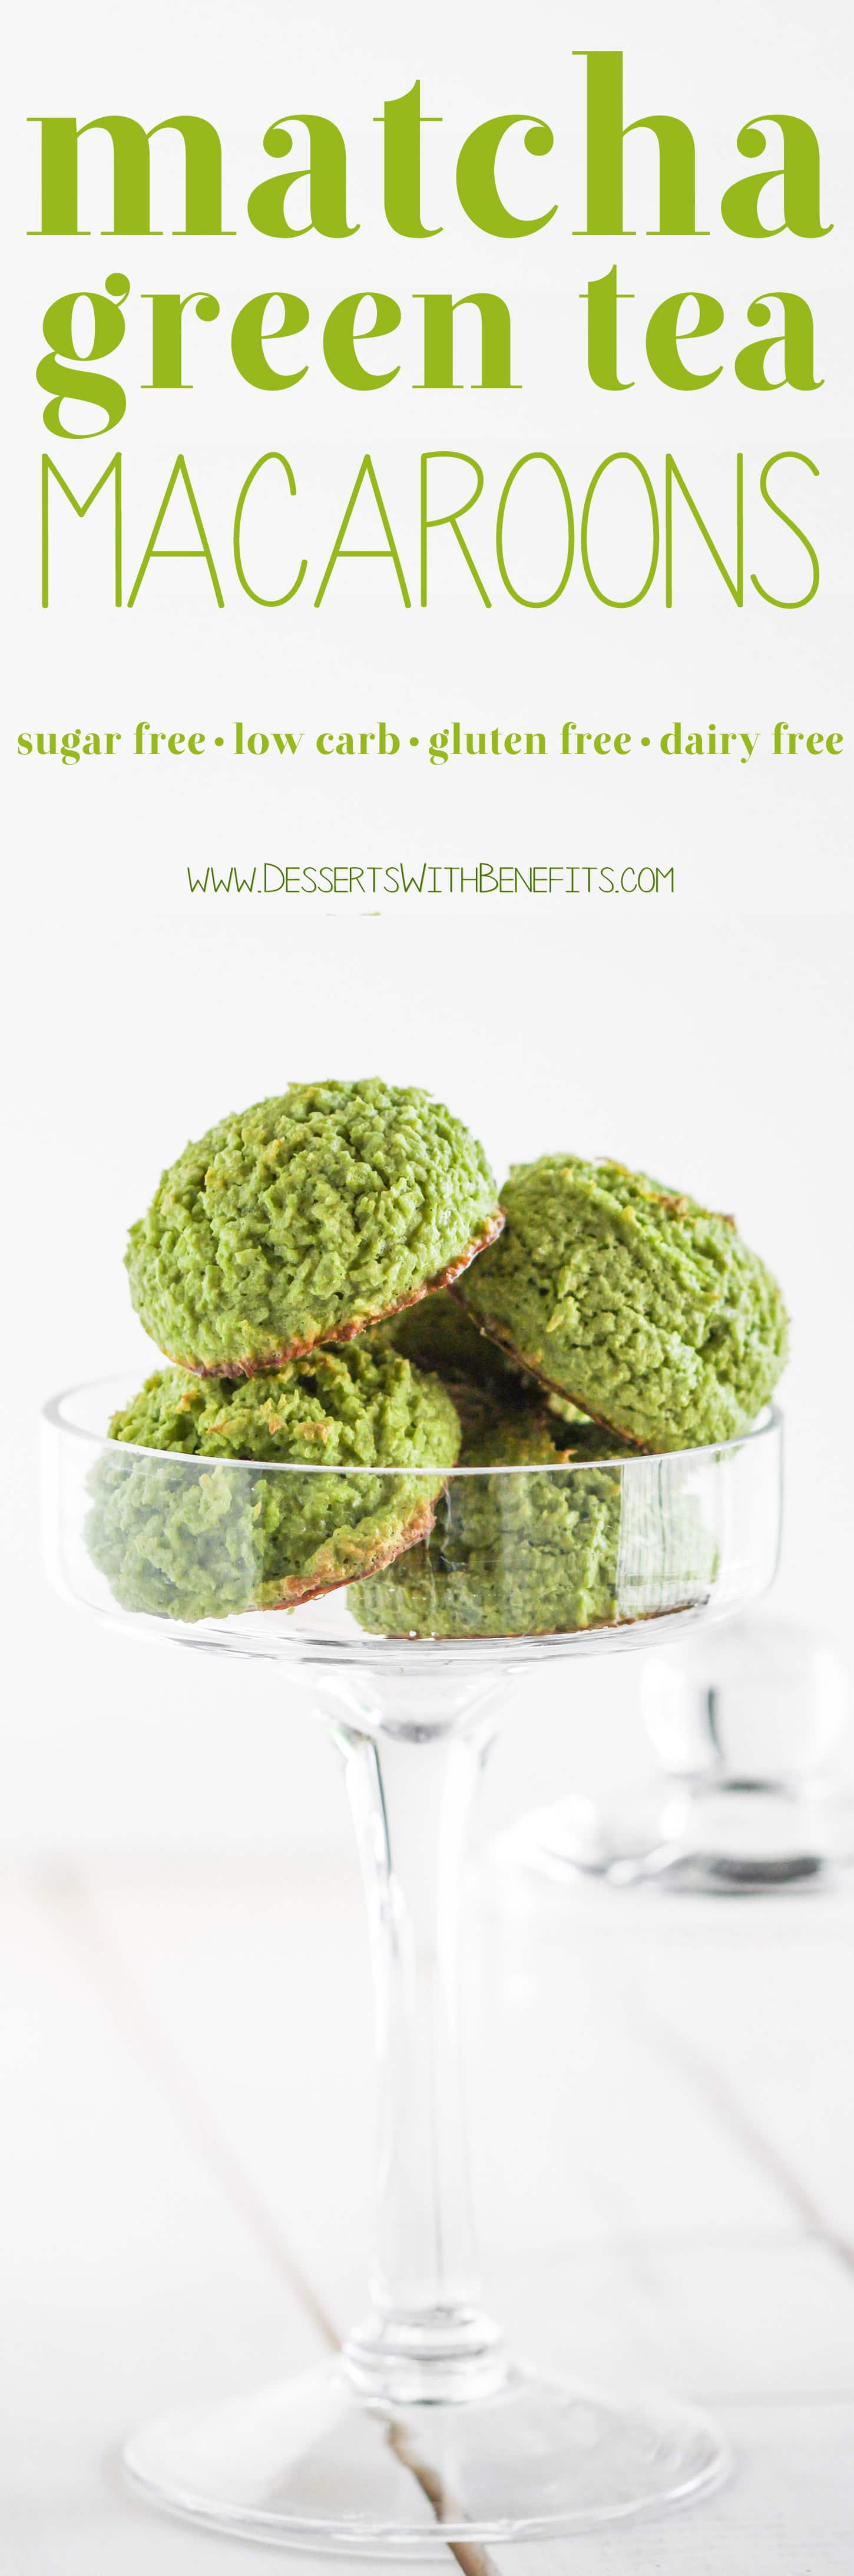 90-calorie Matcha Green Tea Coconut Macaroons – heaven in a bite-sized package! They're chewy from the coconut, have a deep, sophisticated matcha flavor, and are perfectly sweet. You'd never know these Matcha Macaroons are sugar free, low carb, gluten free, AND dairy free! Healthy Dessert Recipes at the Desserts With Benefits Blog (www.DessertsWithBenefits.com)